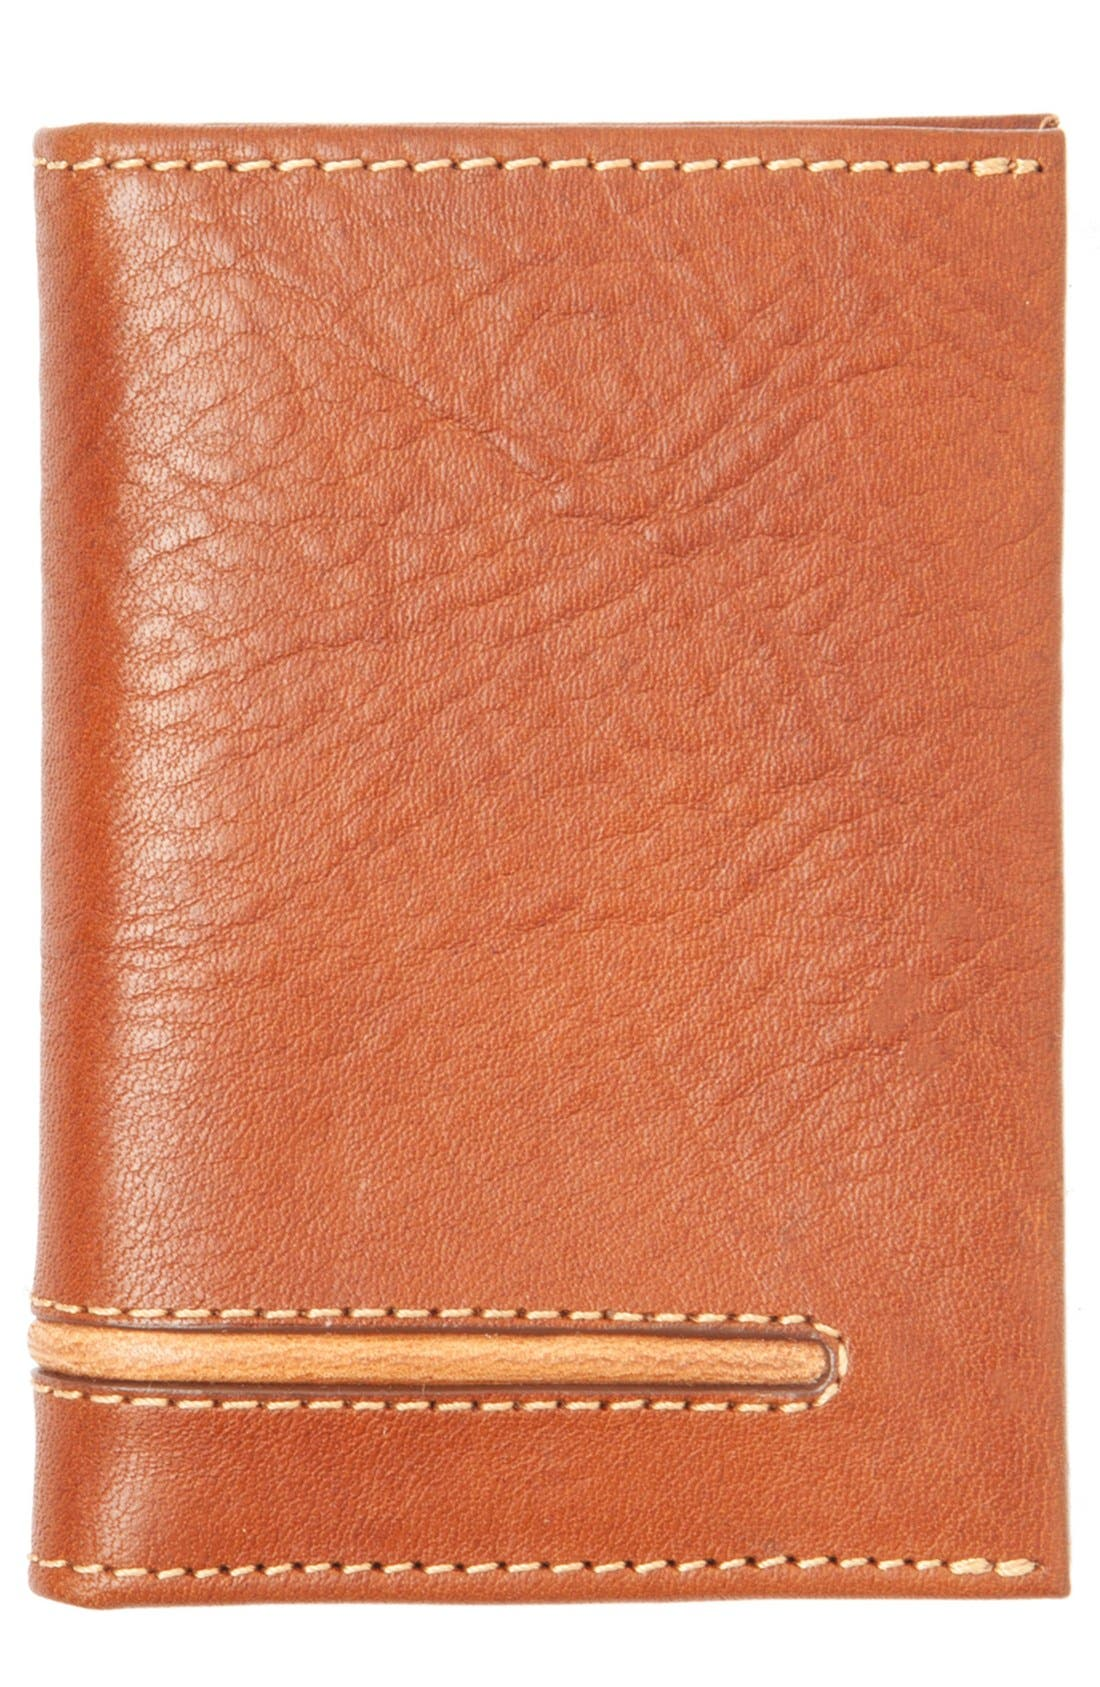 Tommy Bahama Leather Money Clip Card Case